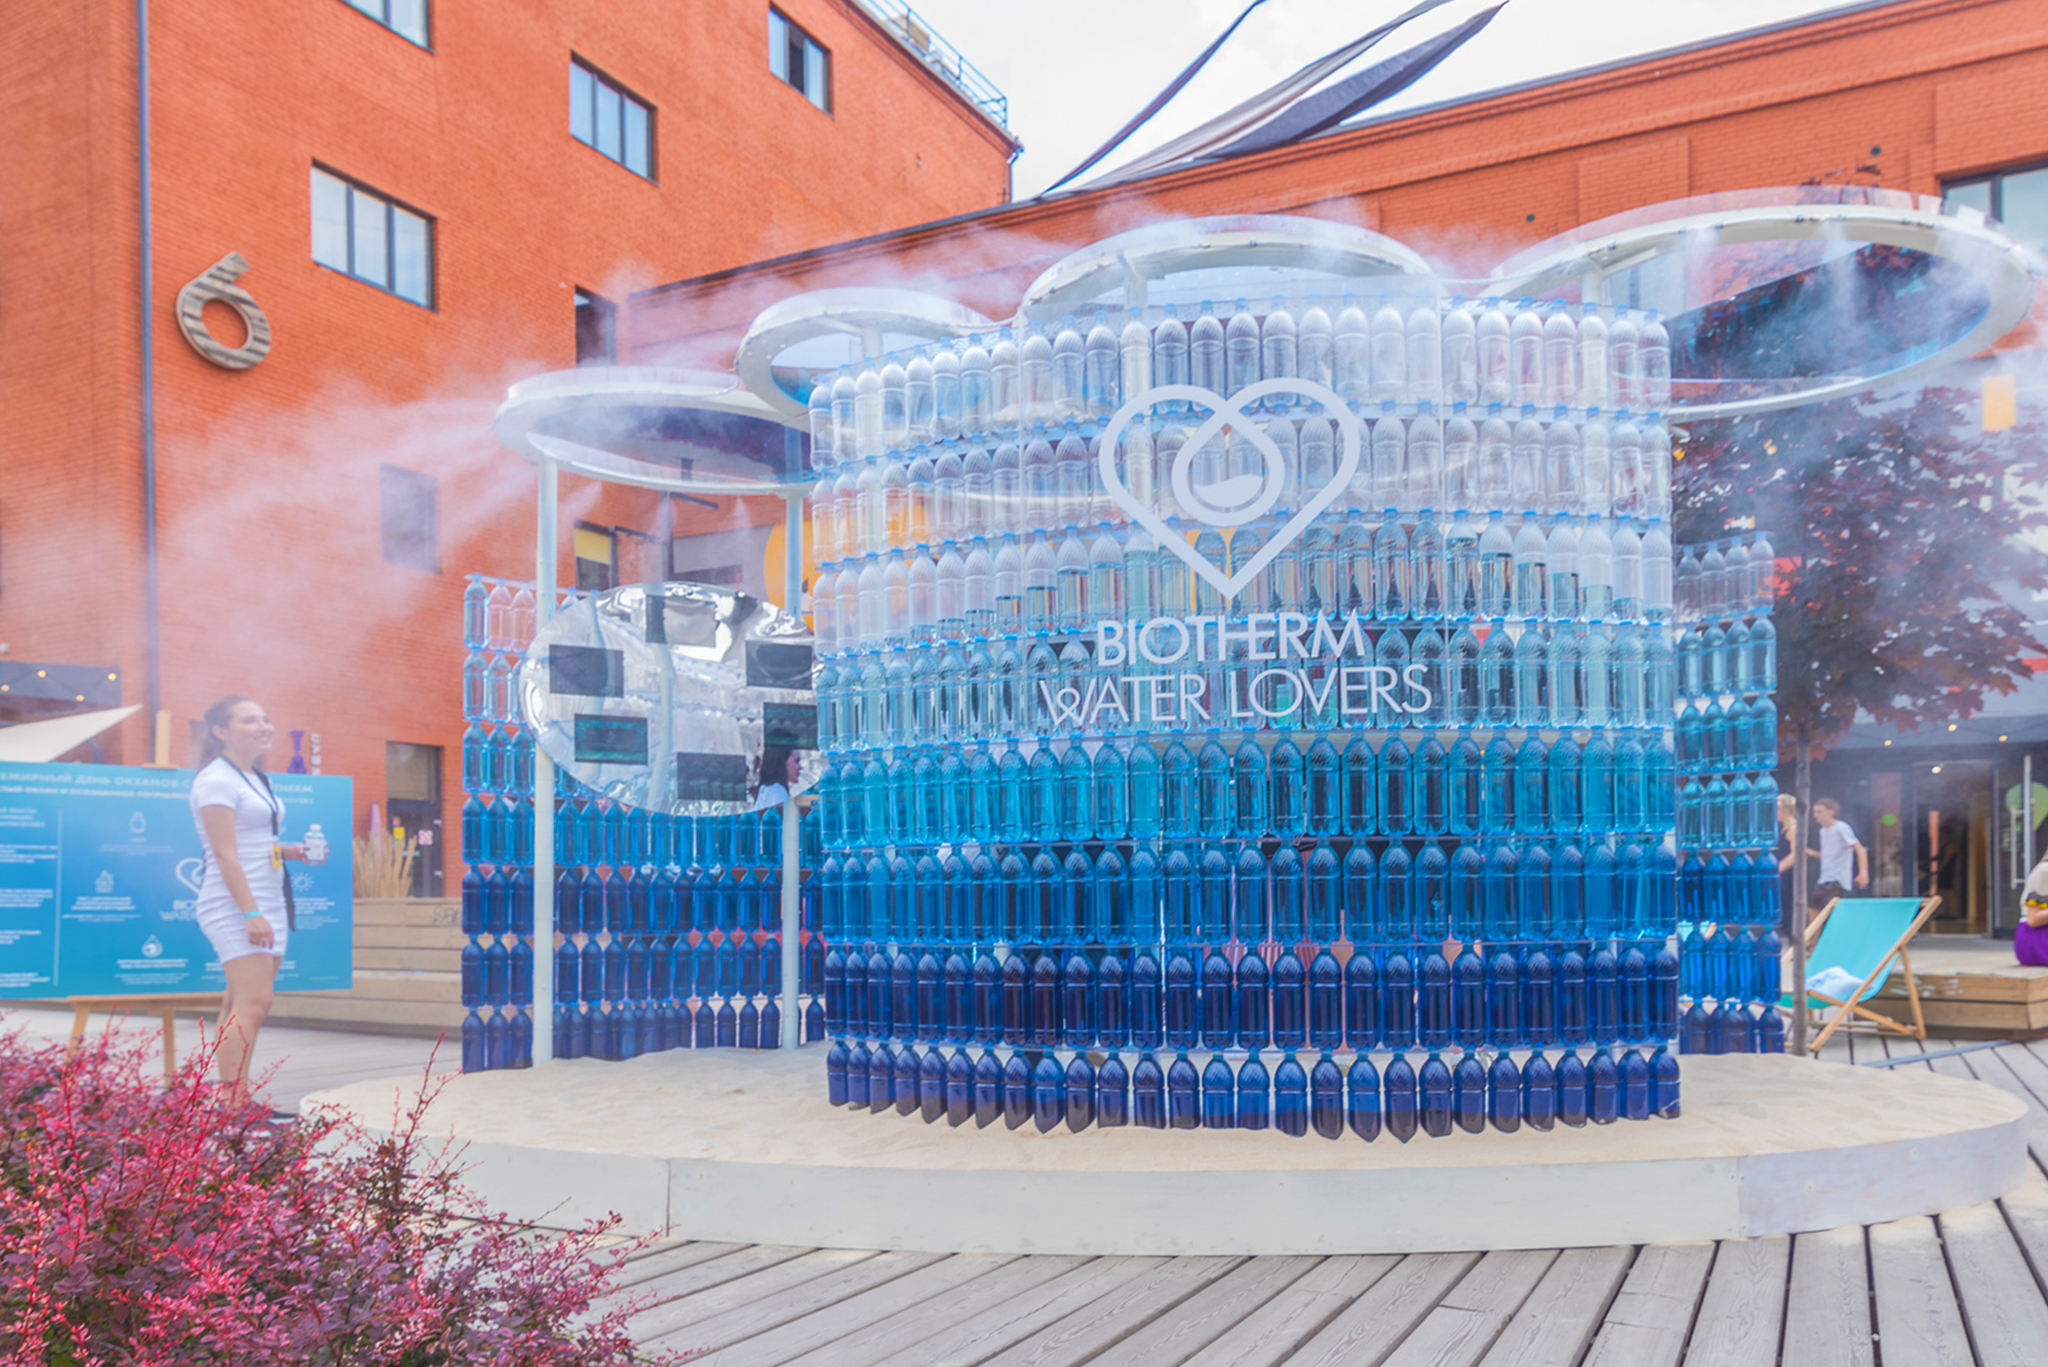 """Waterlovers"" pavilion for Biotherm."